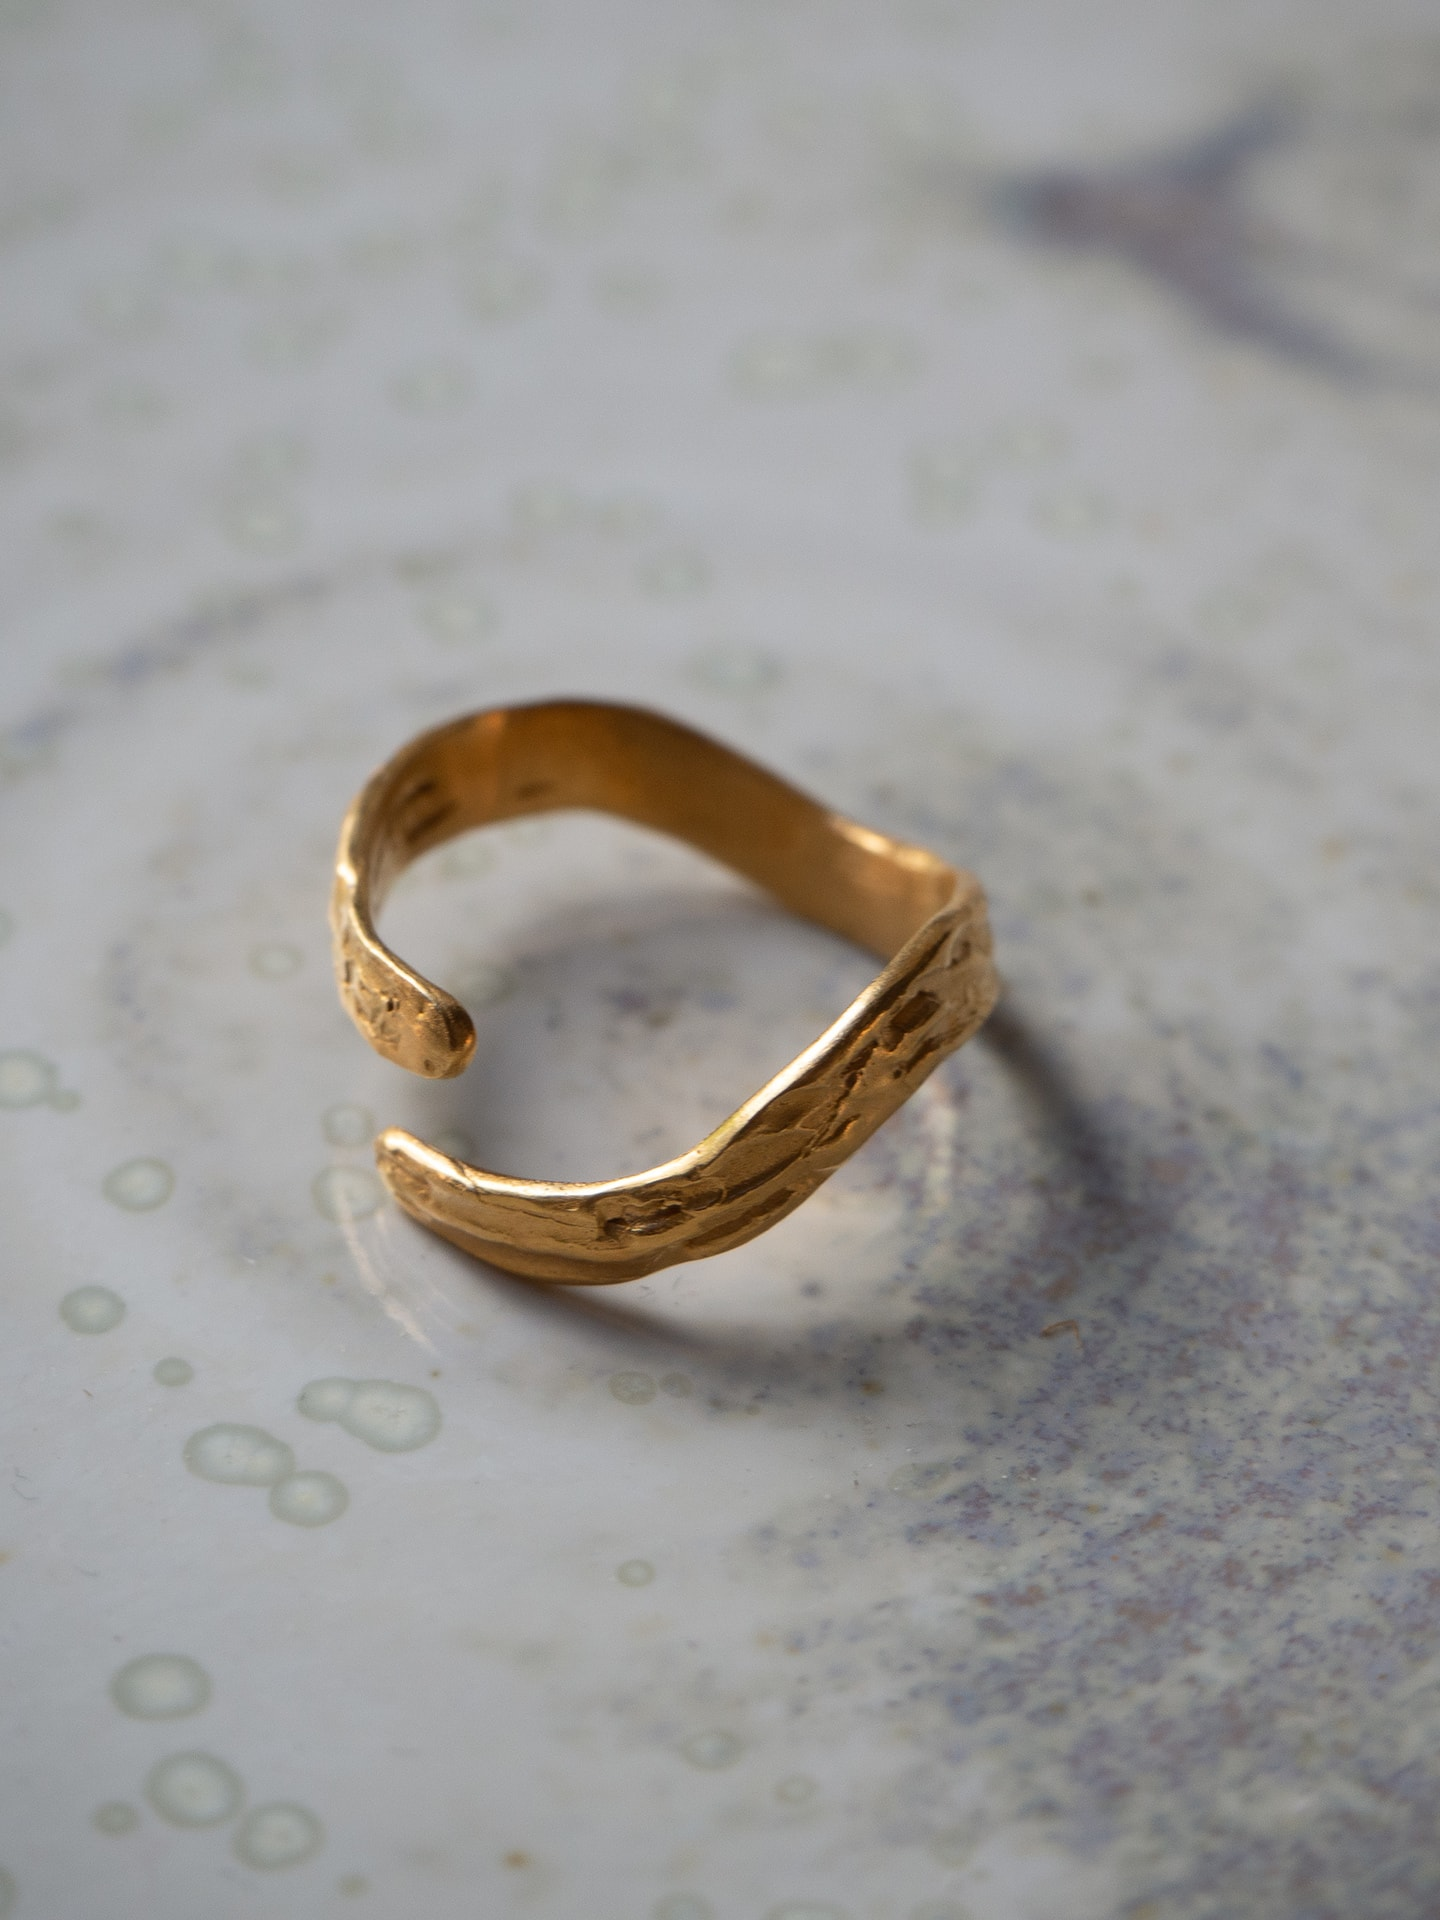 Oh my darling wavy gold ring